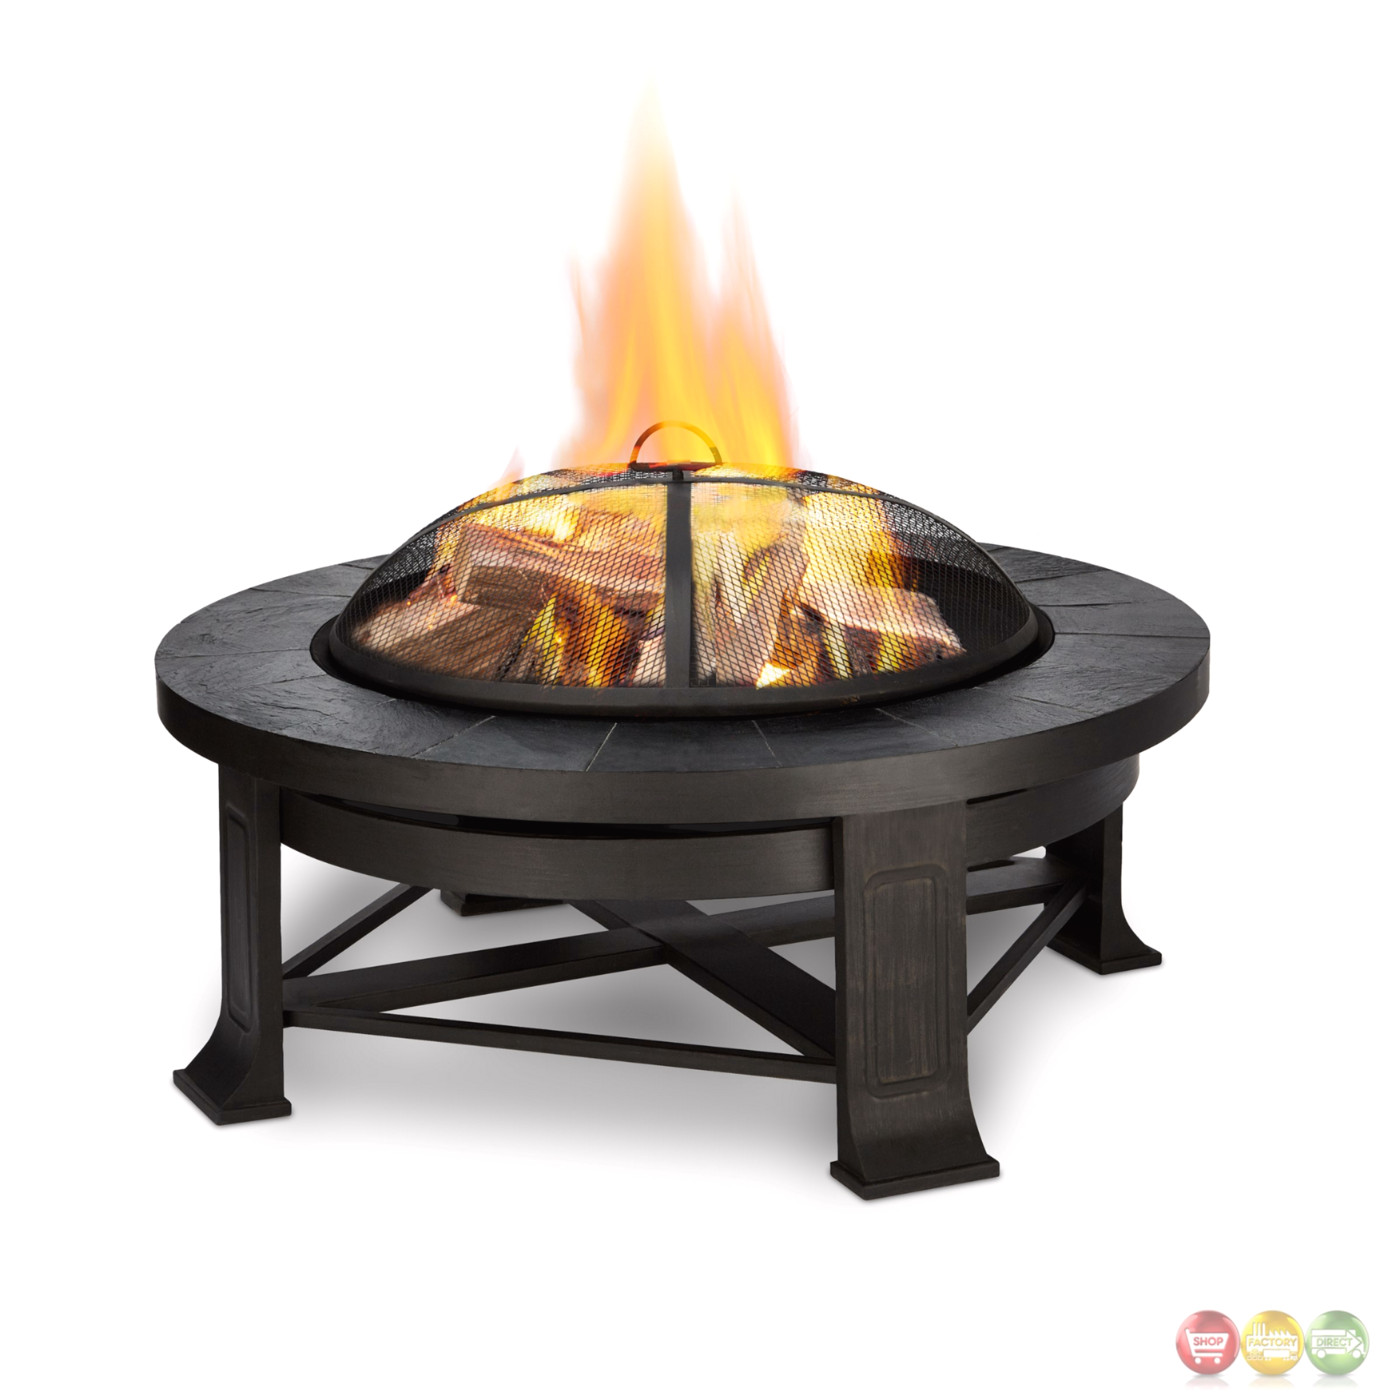 Edwards Outdoor Wood Burning 34 Quot Round Fire Pit With Gray Tile